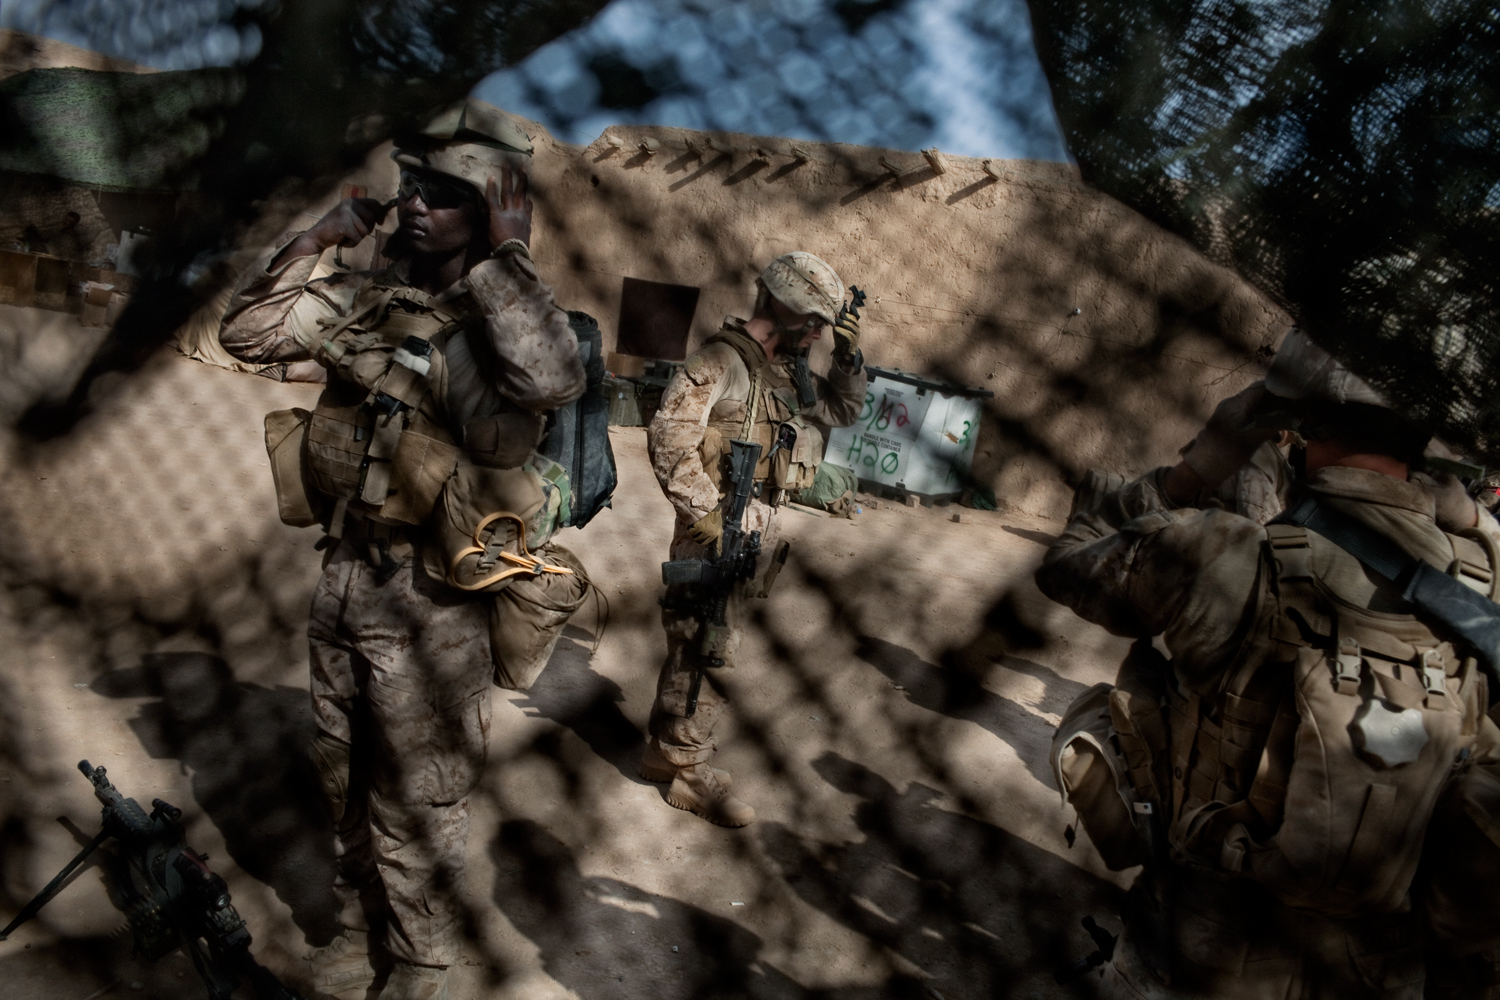 U.S. Marines prepare to depart Combat Operations Post Coutu for a patrol in Marja District, Helmand Province, Afghanistan.